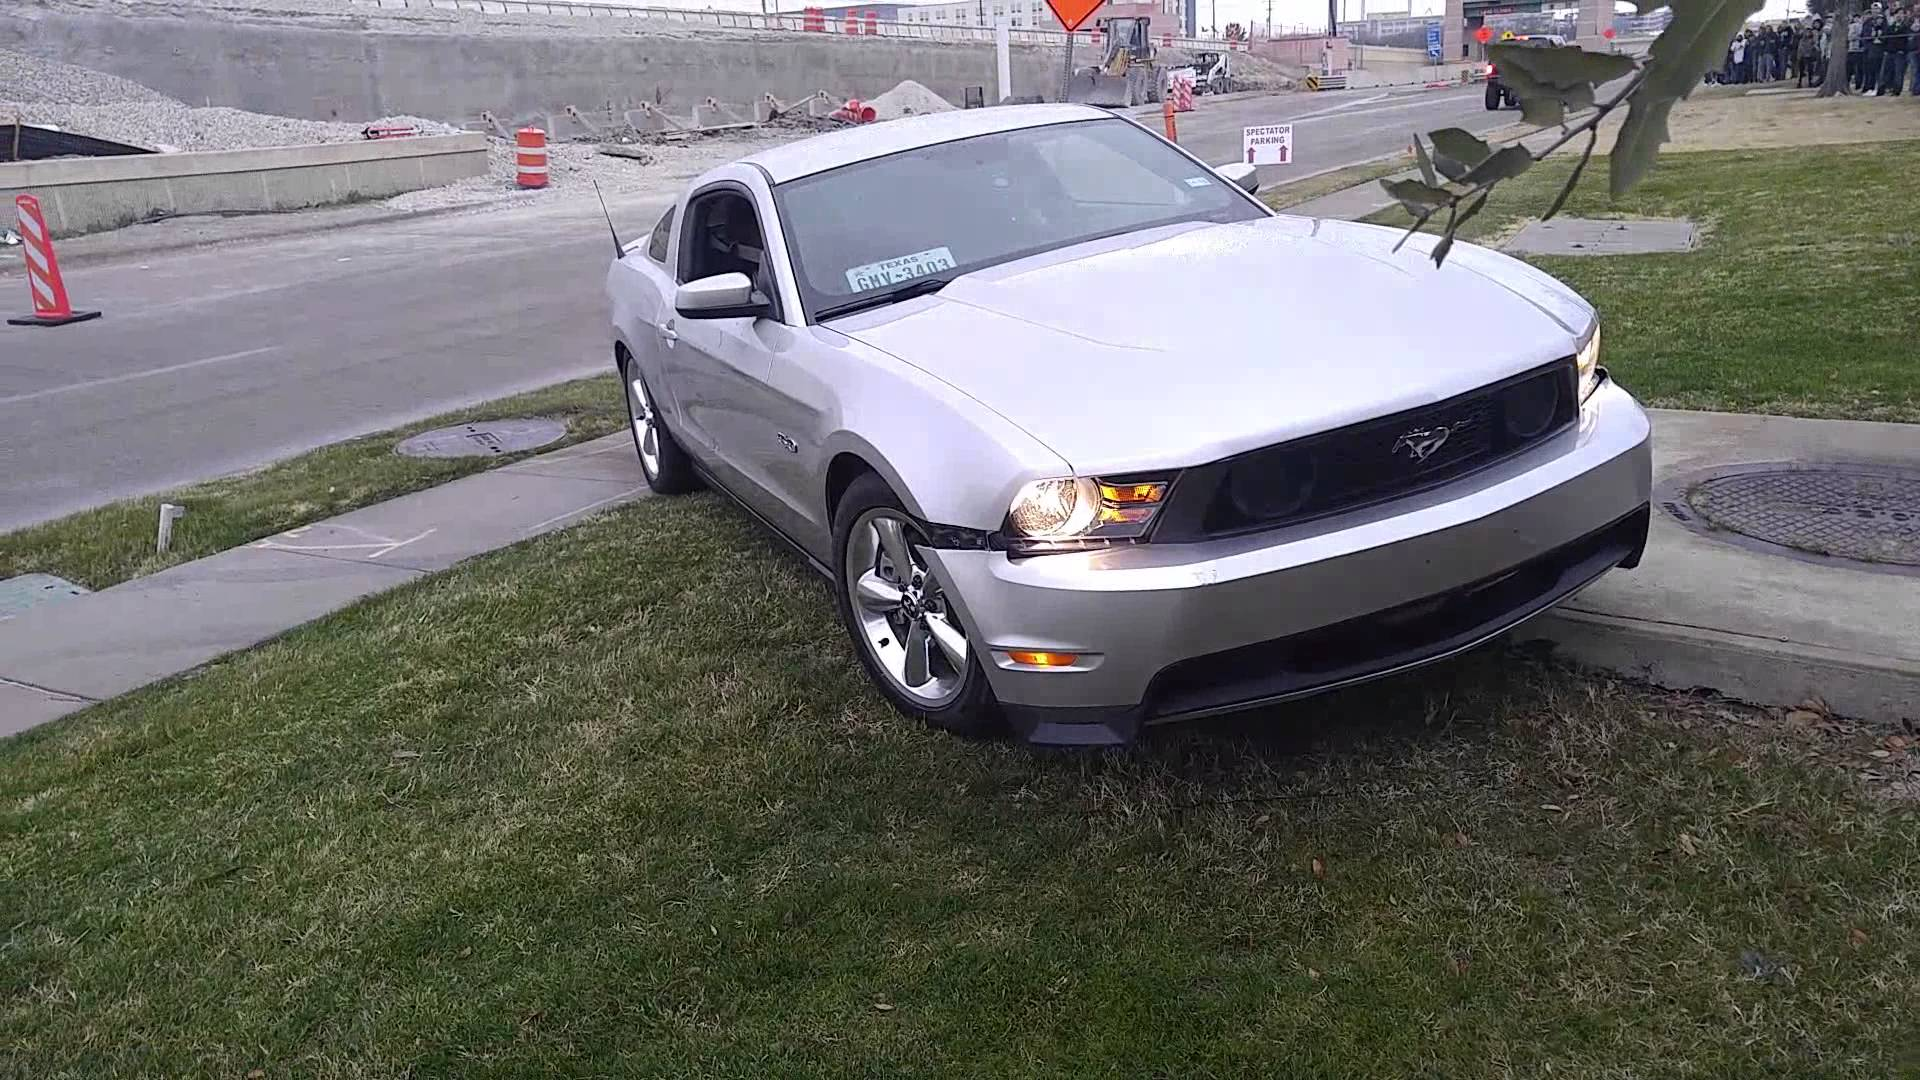 Cars Sale by Owner Dallas Lovely Mustang Crash at Cars and Coffee Dallas Tx 2 6 16 Youtube